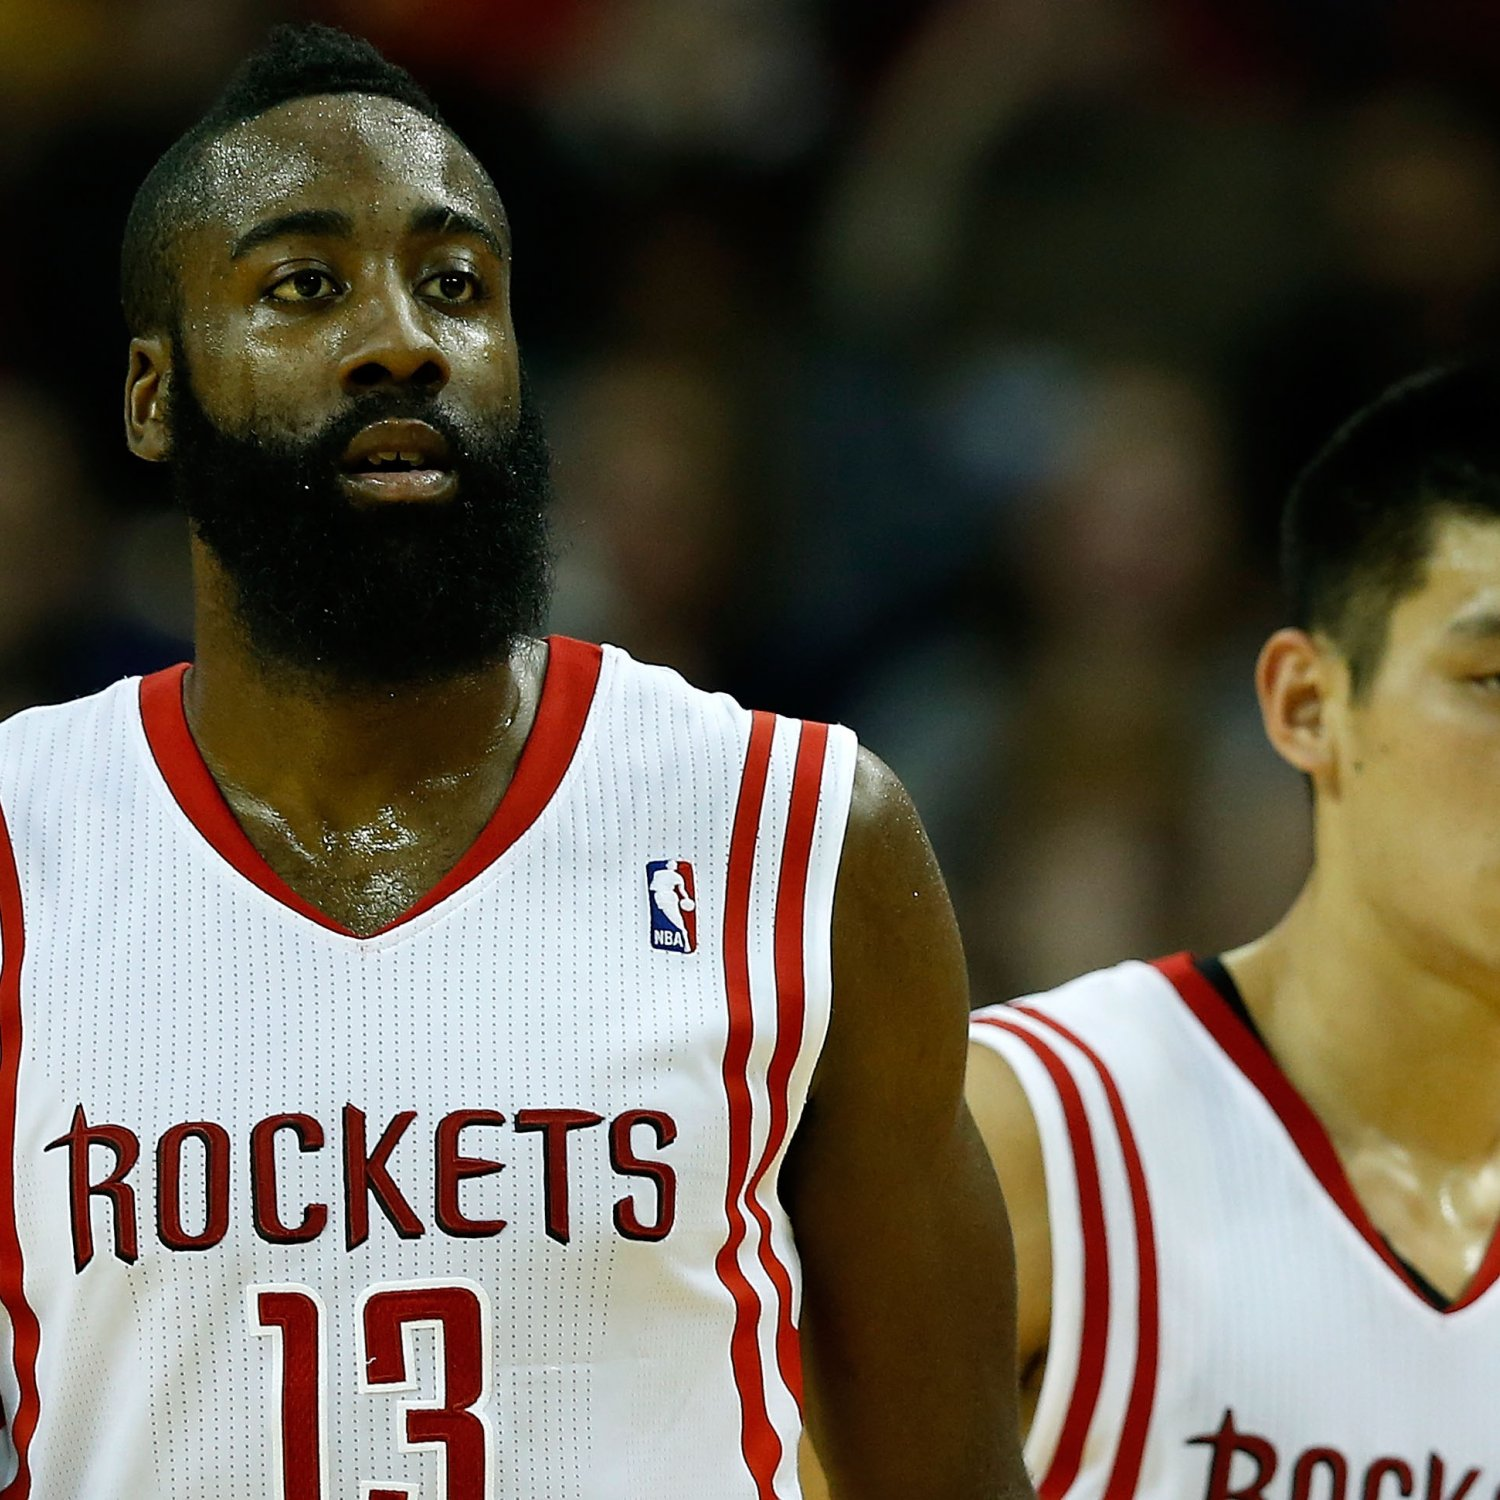 Rockets All Time Roster: Handicapping Houston Rockets Players' Odds Of Making The